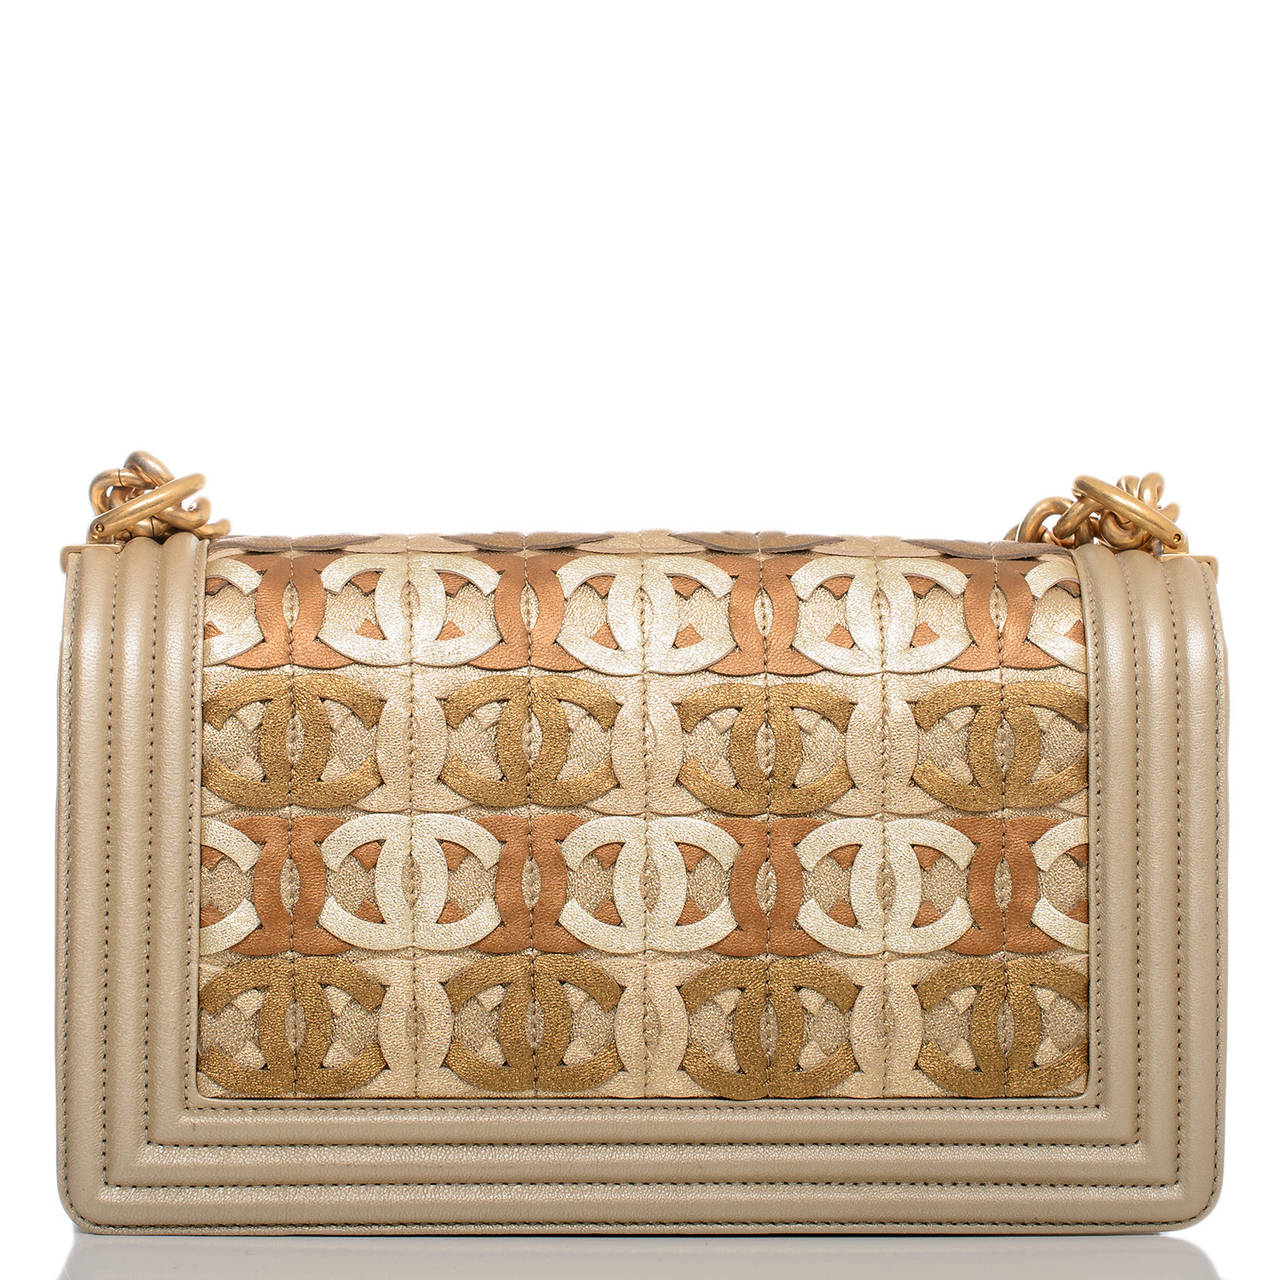 Chanel Runway Gold Metallic CC Embellished Lambskin Medium Boy Bag In New Never_worn Condition For Sale In New York, NY